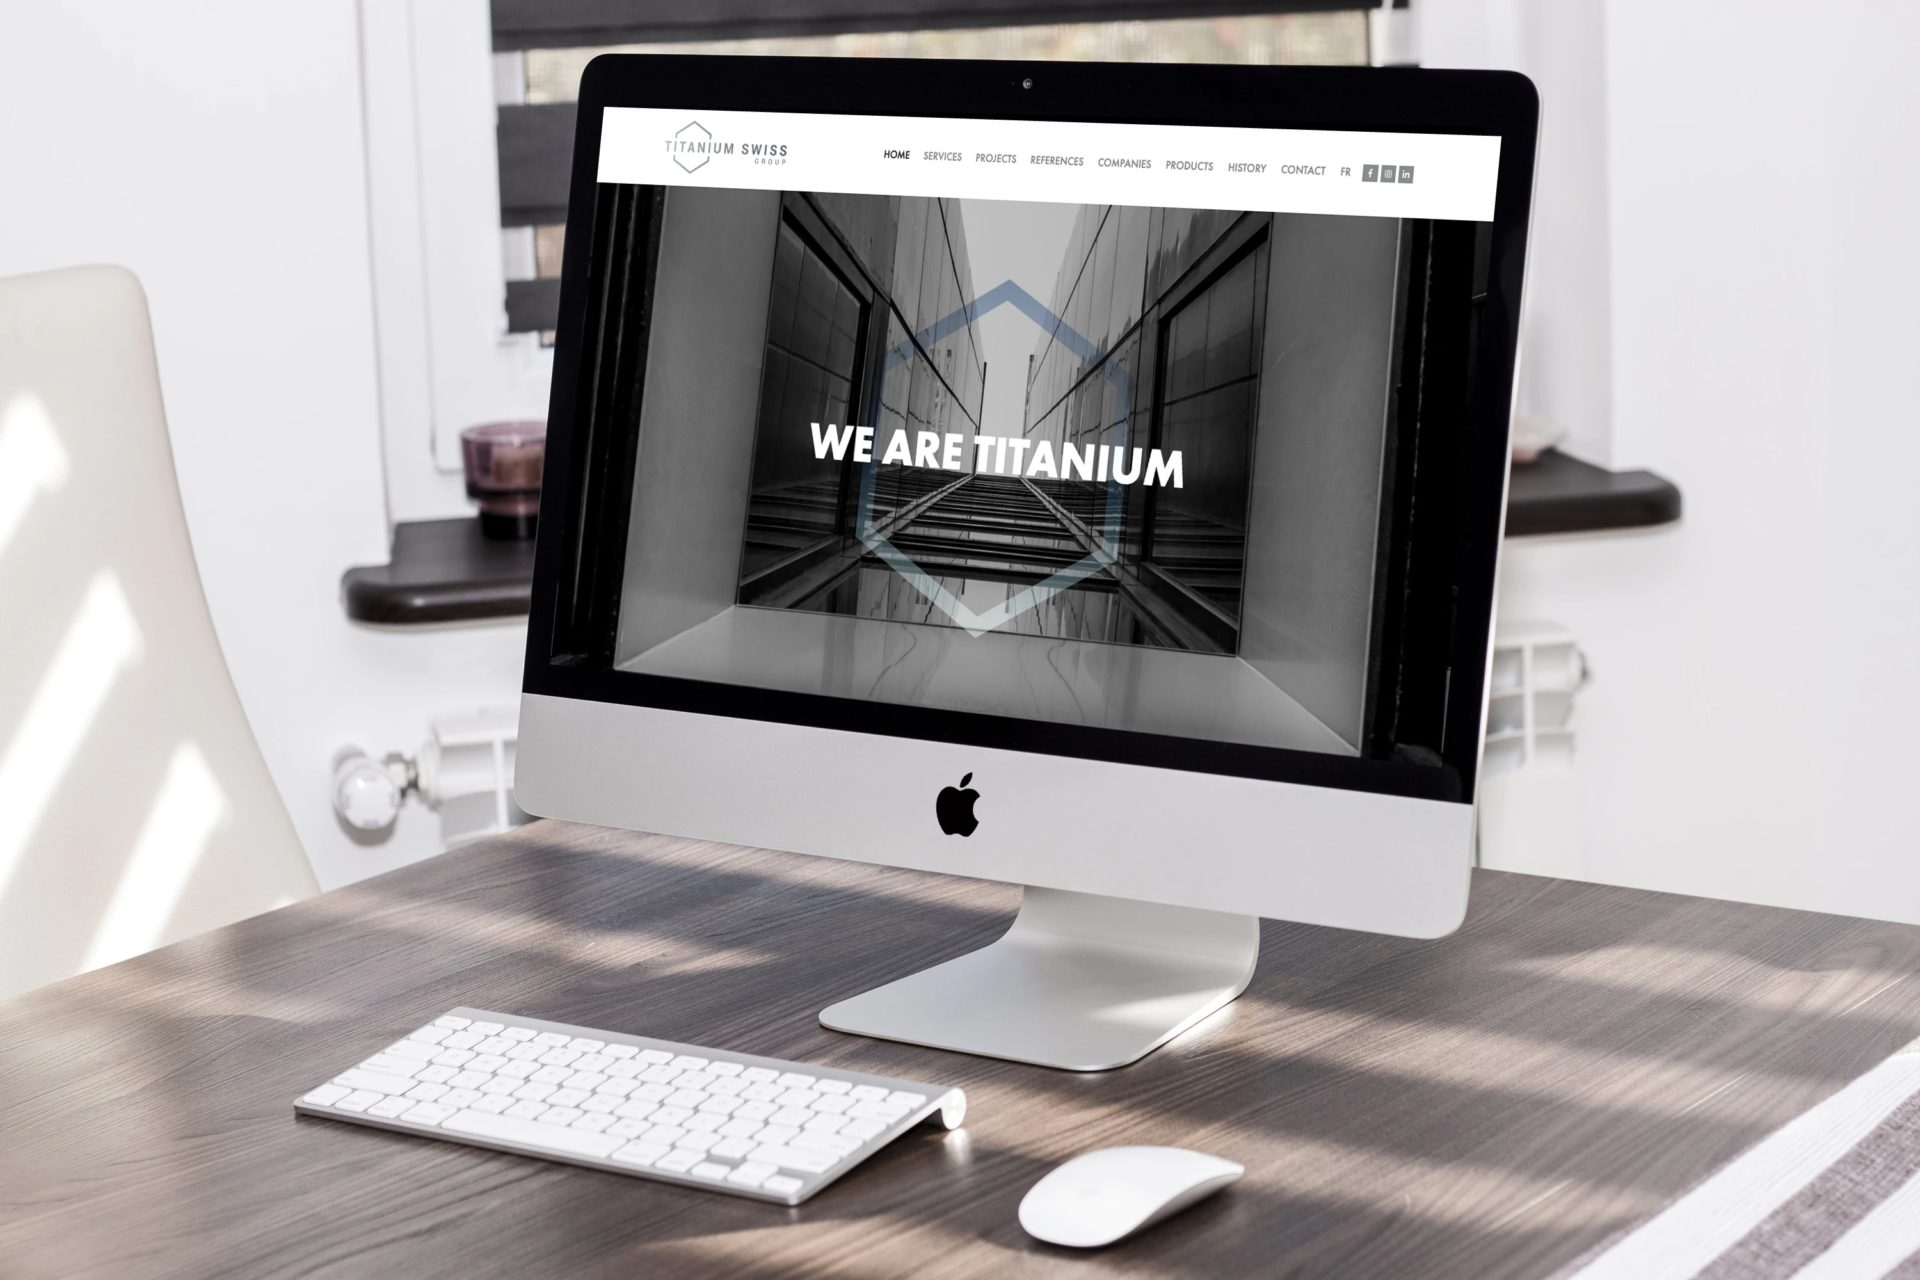 Titanium Swiss Group Lancement site